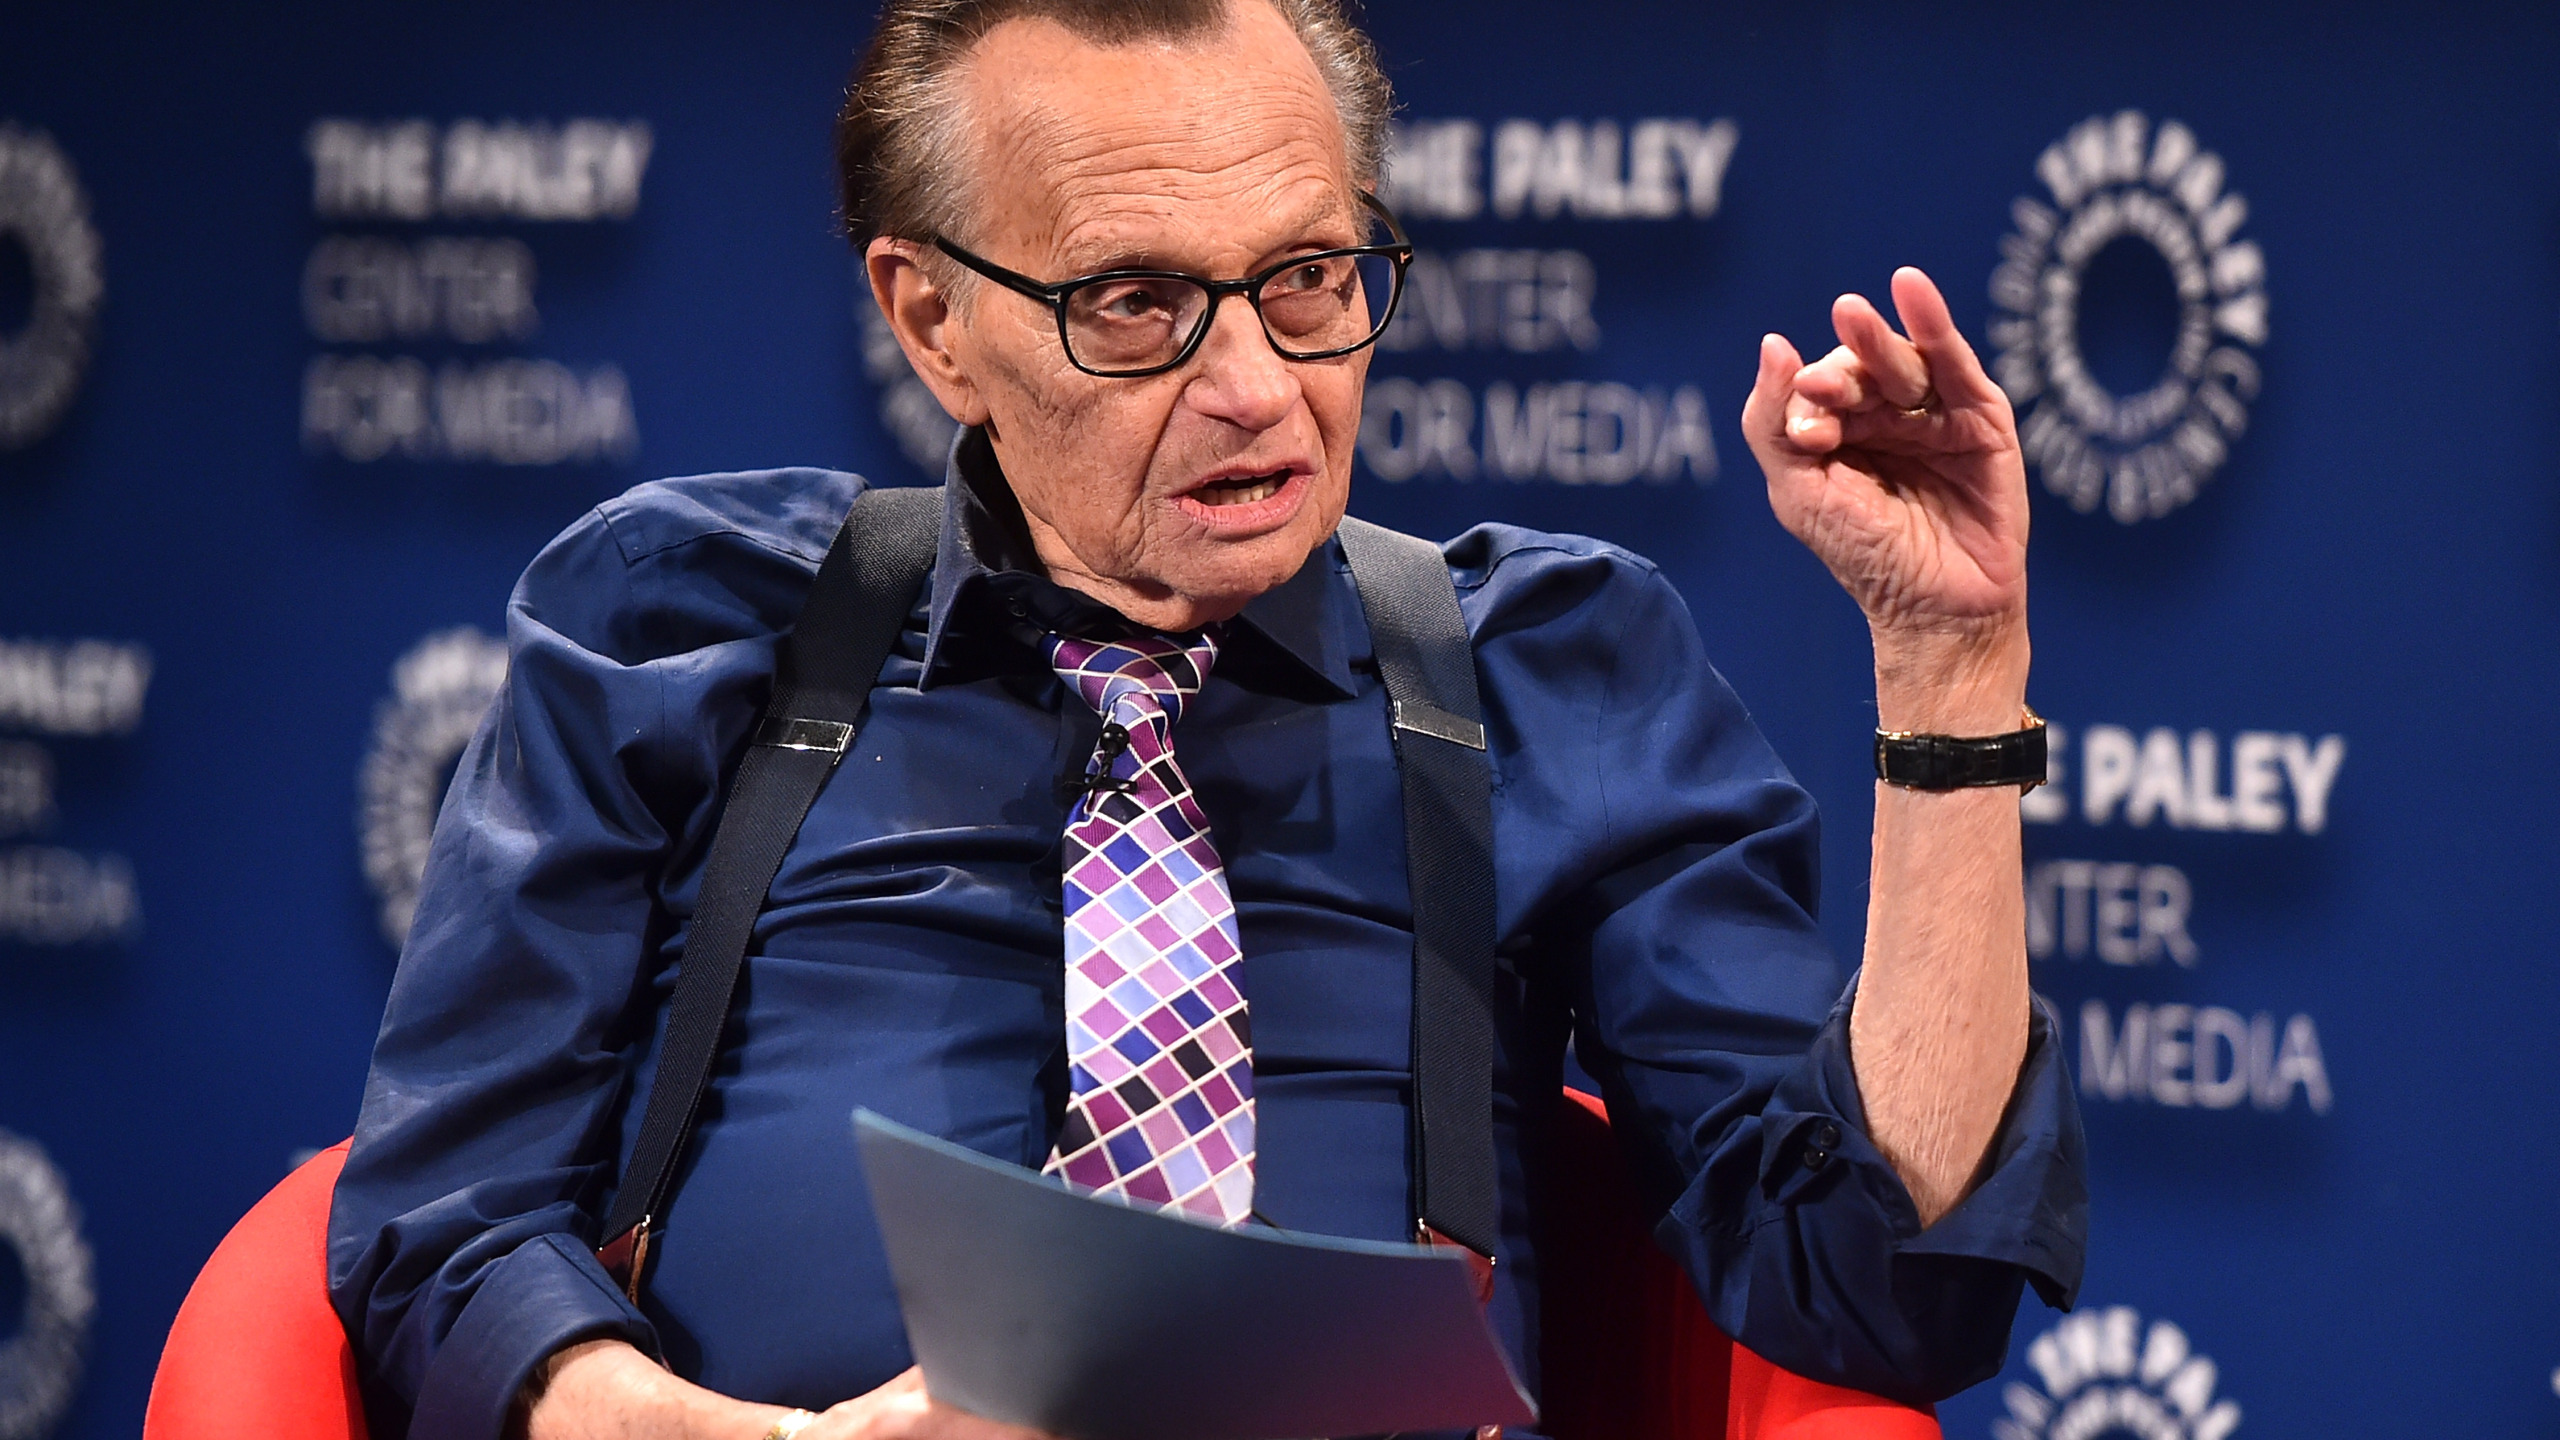 Larry King: Veteran US Talk Show Host Dies Aged 87